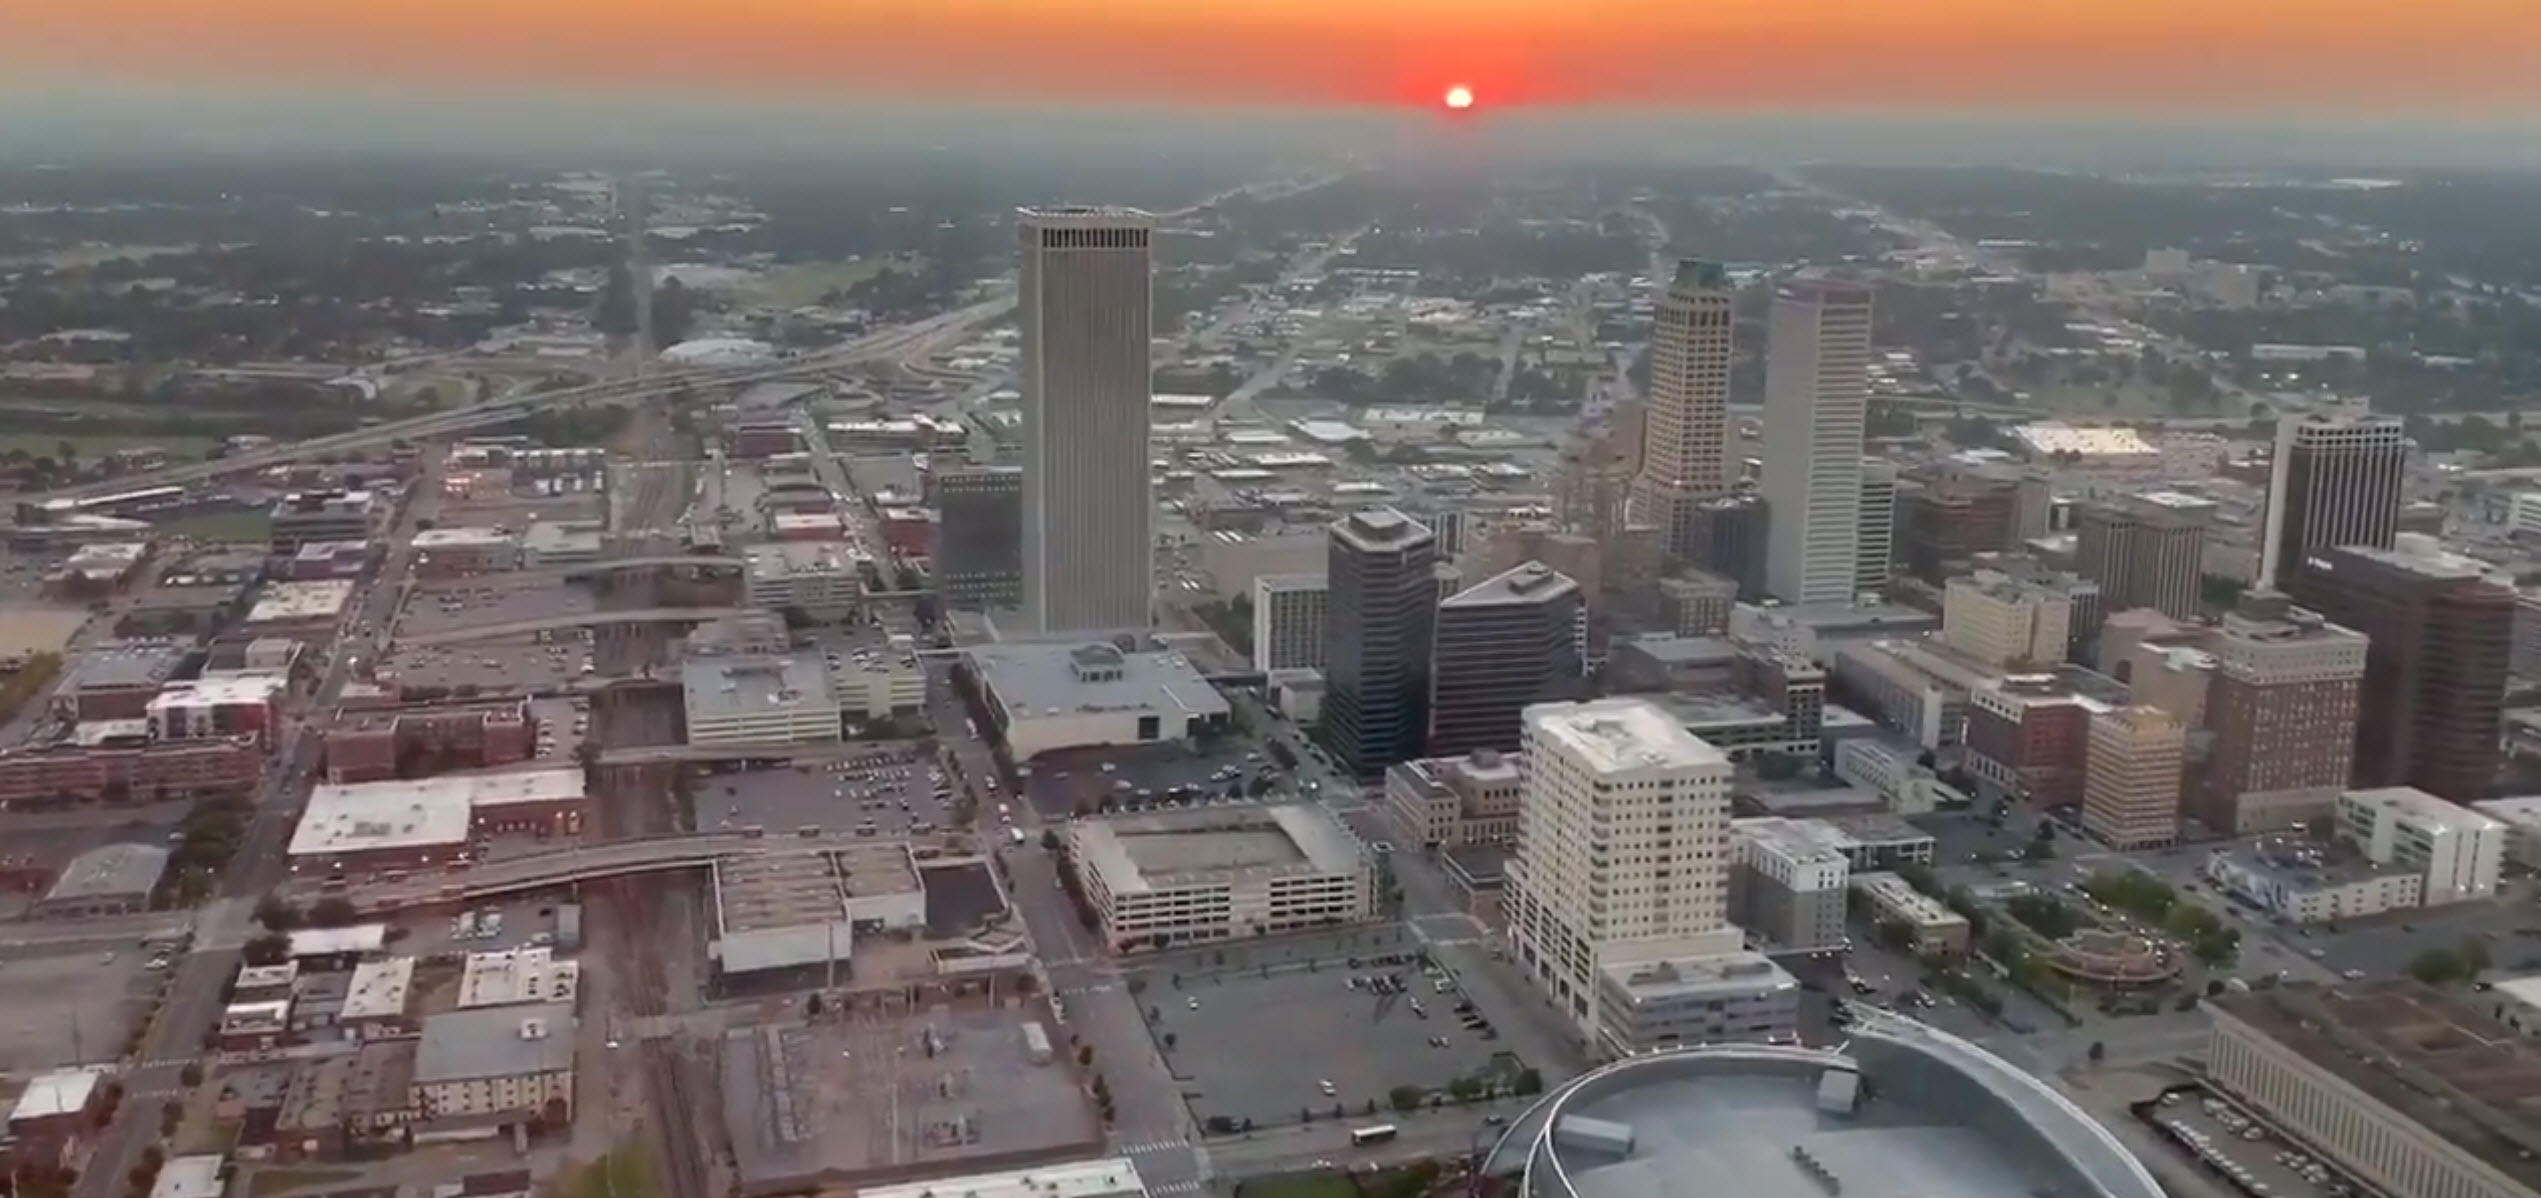 Screenshot from video of Mayor G.T. Bynum's flyover of downtown Tulsa on Sept. 18 or as we call it 918 Day.